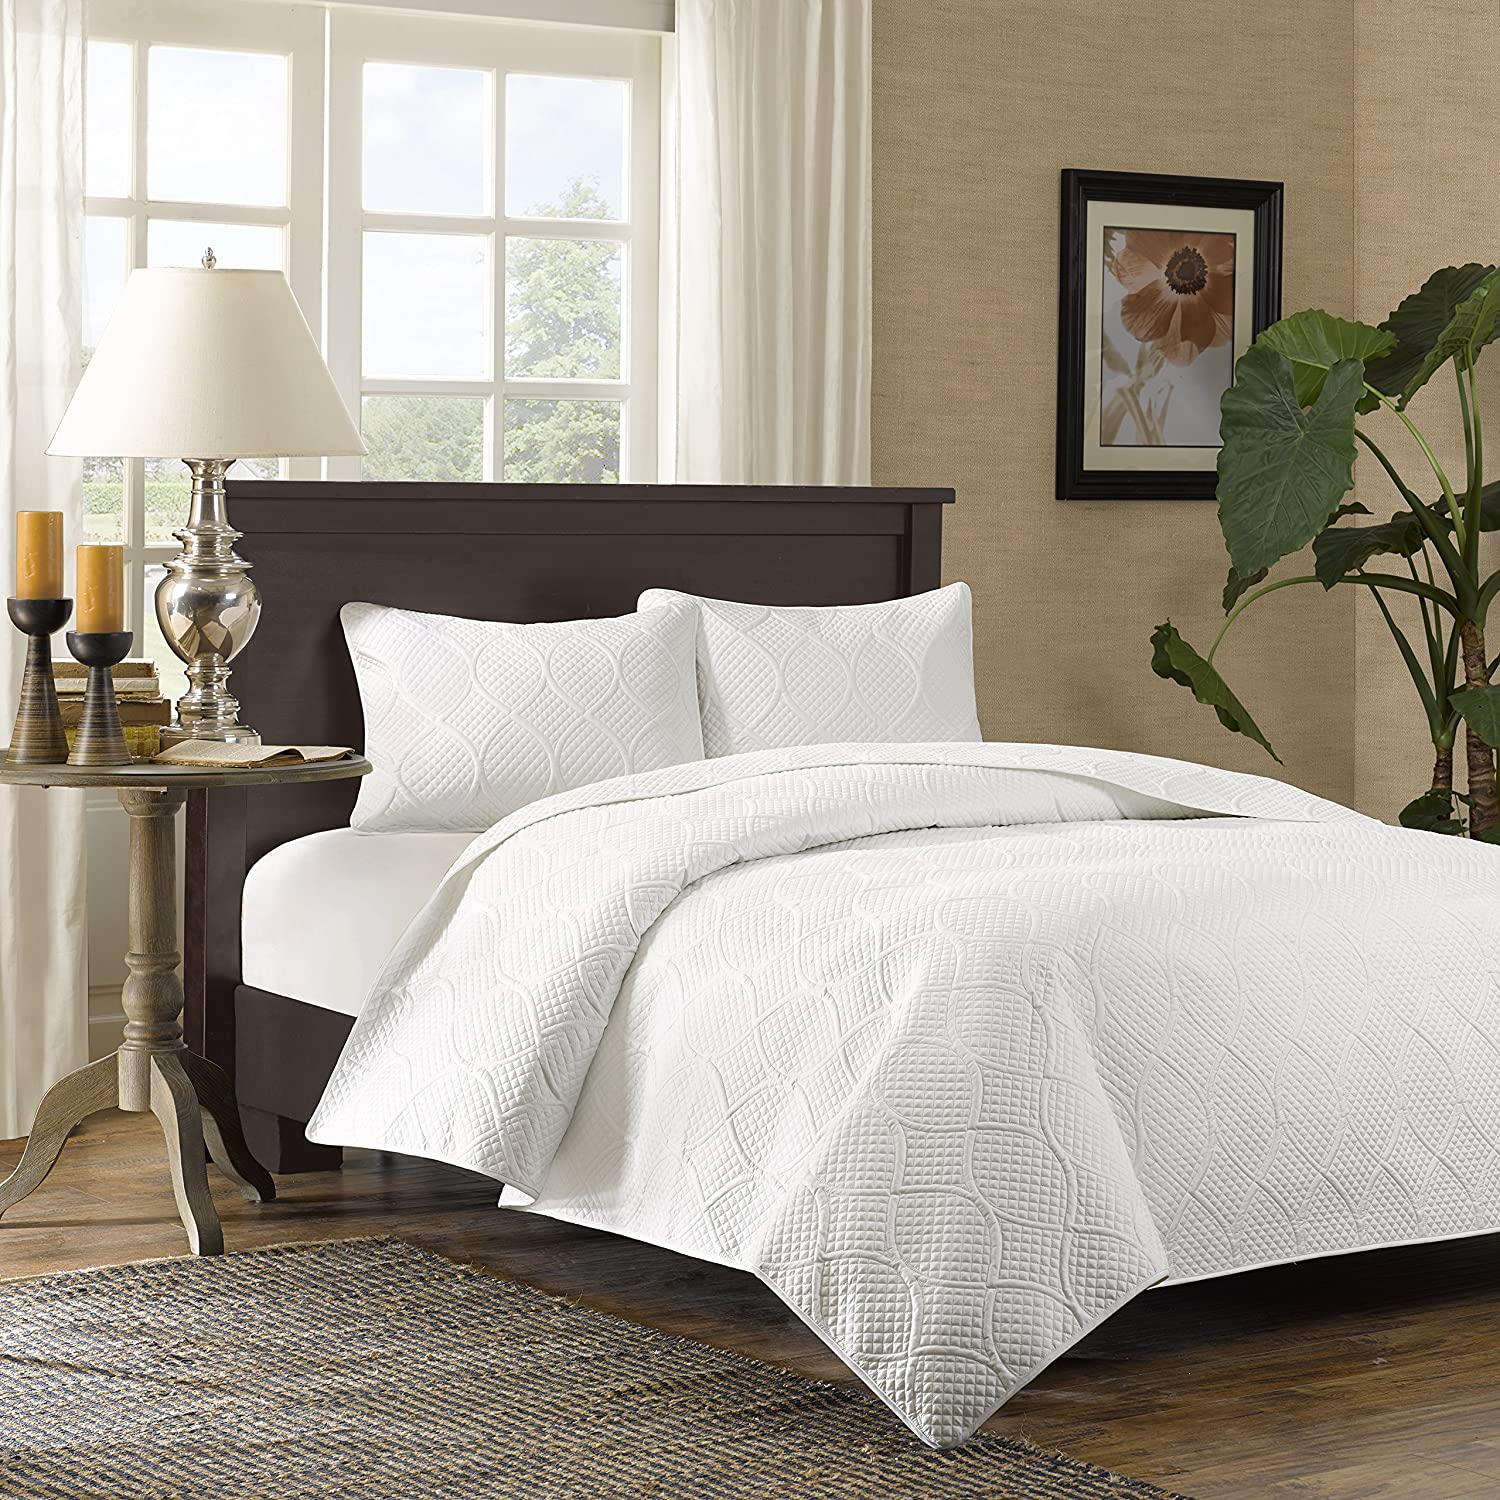 Attractive Amazon.com: Madison Park Corrine 3 Piece Coverlet Set, King/California  King, White: Home U0026 Kitchen